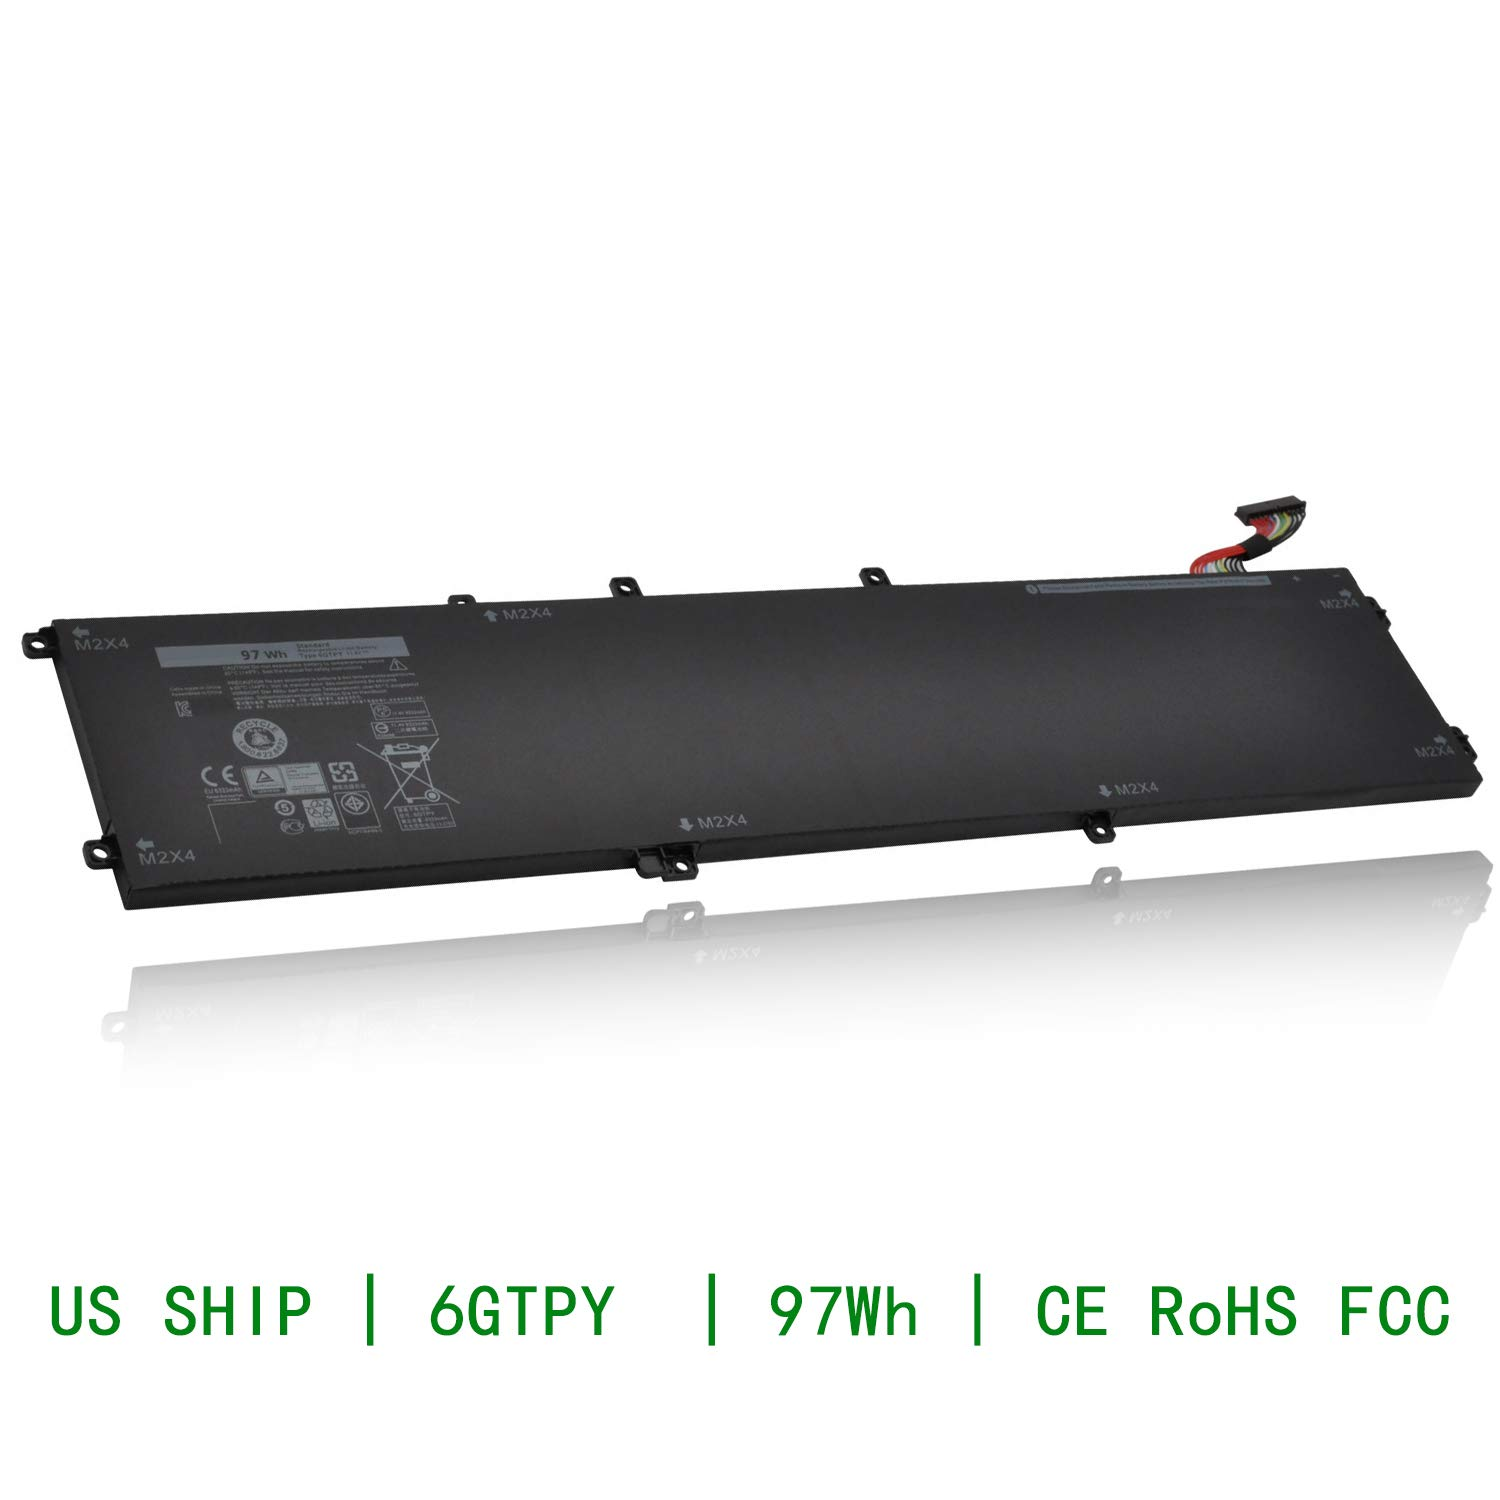 CQCQ 6GTPY Compatible Battery Replacement for DELL XPS15 9560 9550 Precision 5510 5520 M5520[11.4V 97Wh]